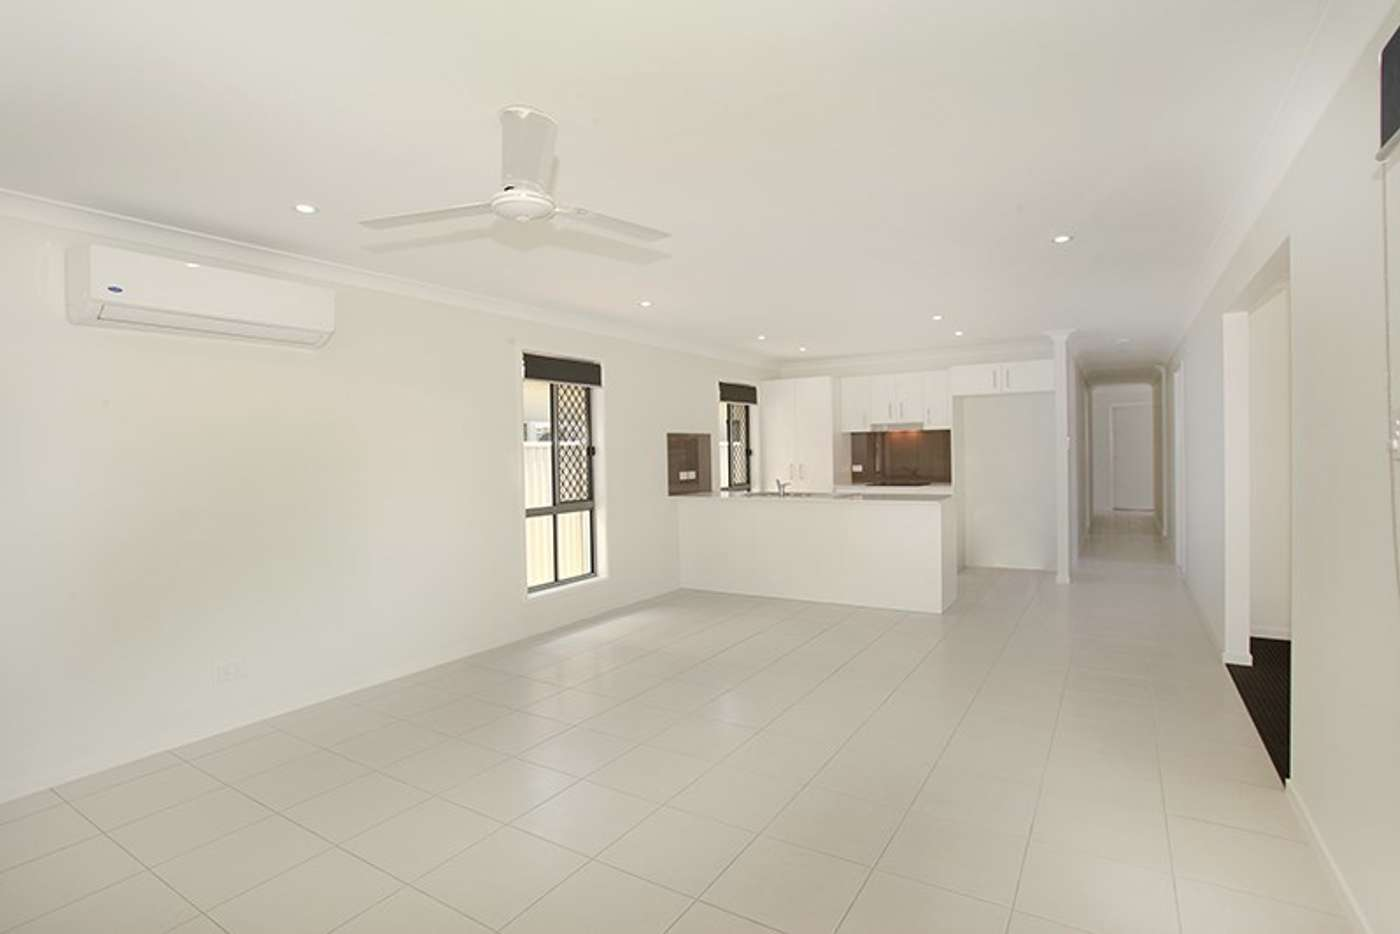 Sixth view of Homely house listing, 16 Burdekin Place, Pelican Waters QLD 4551